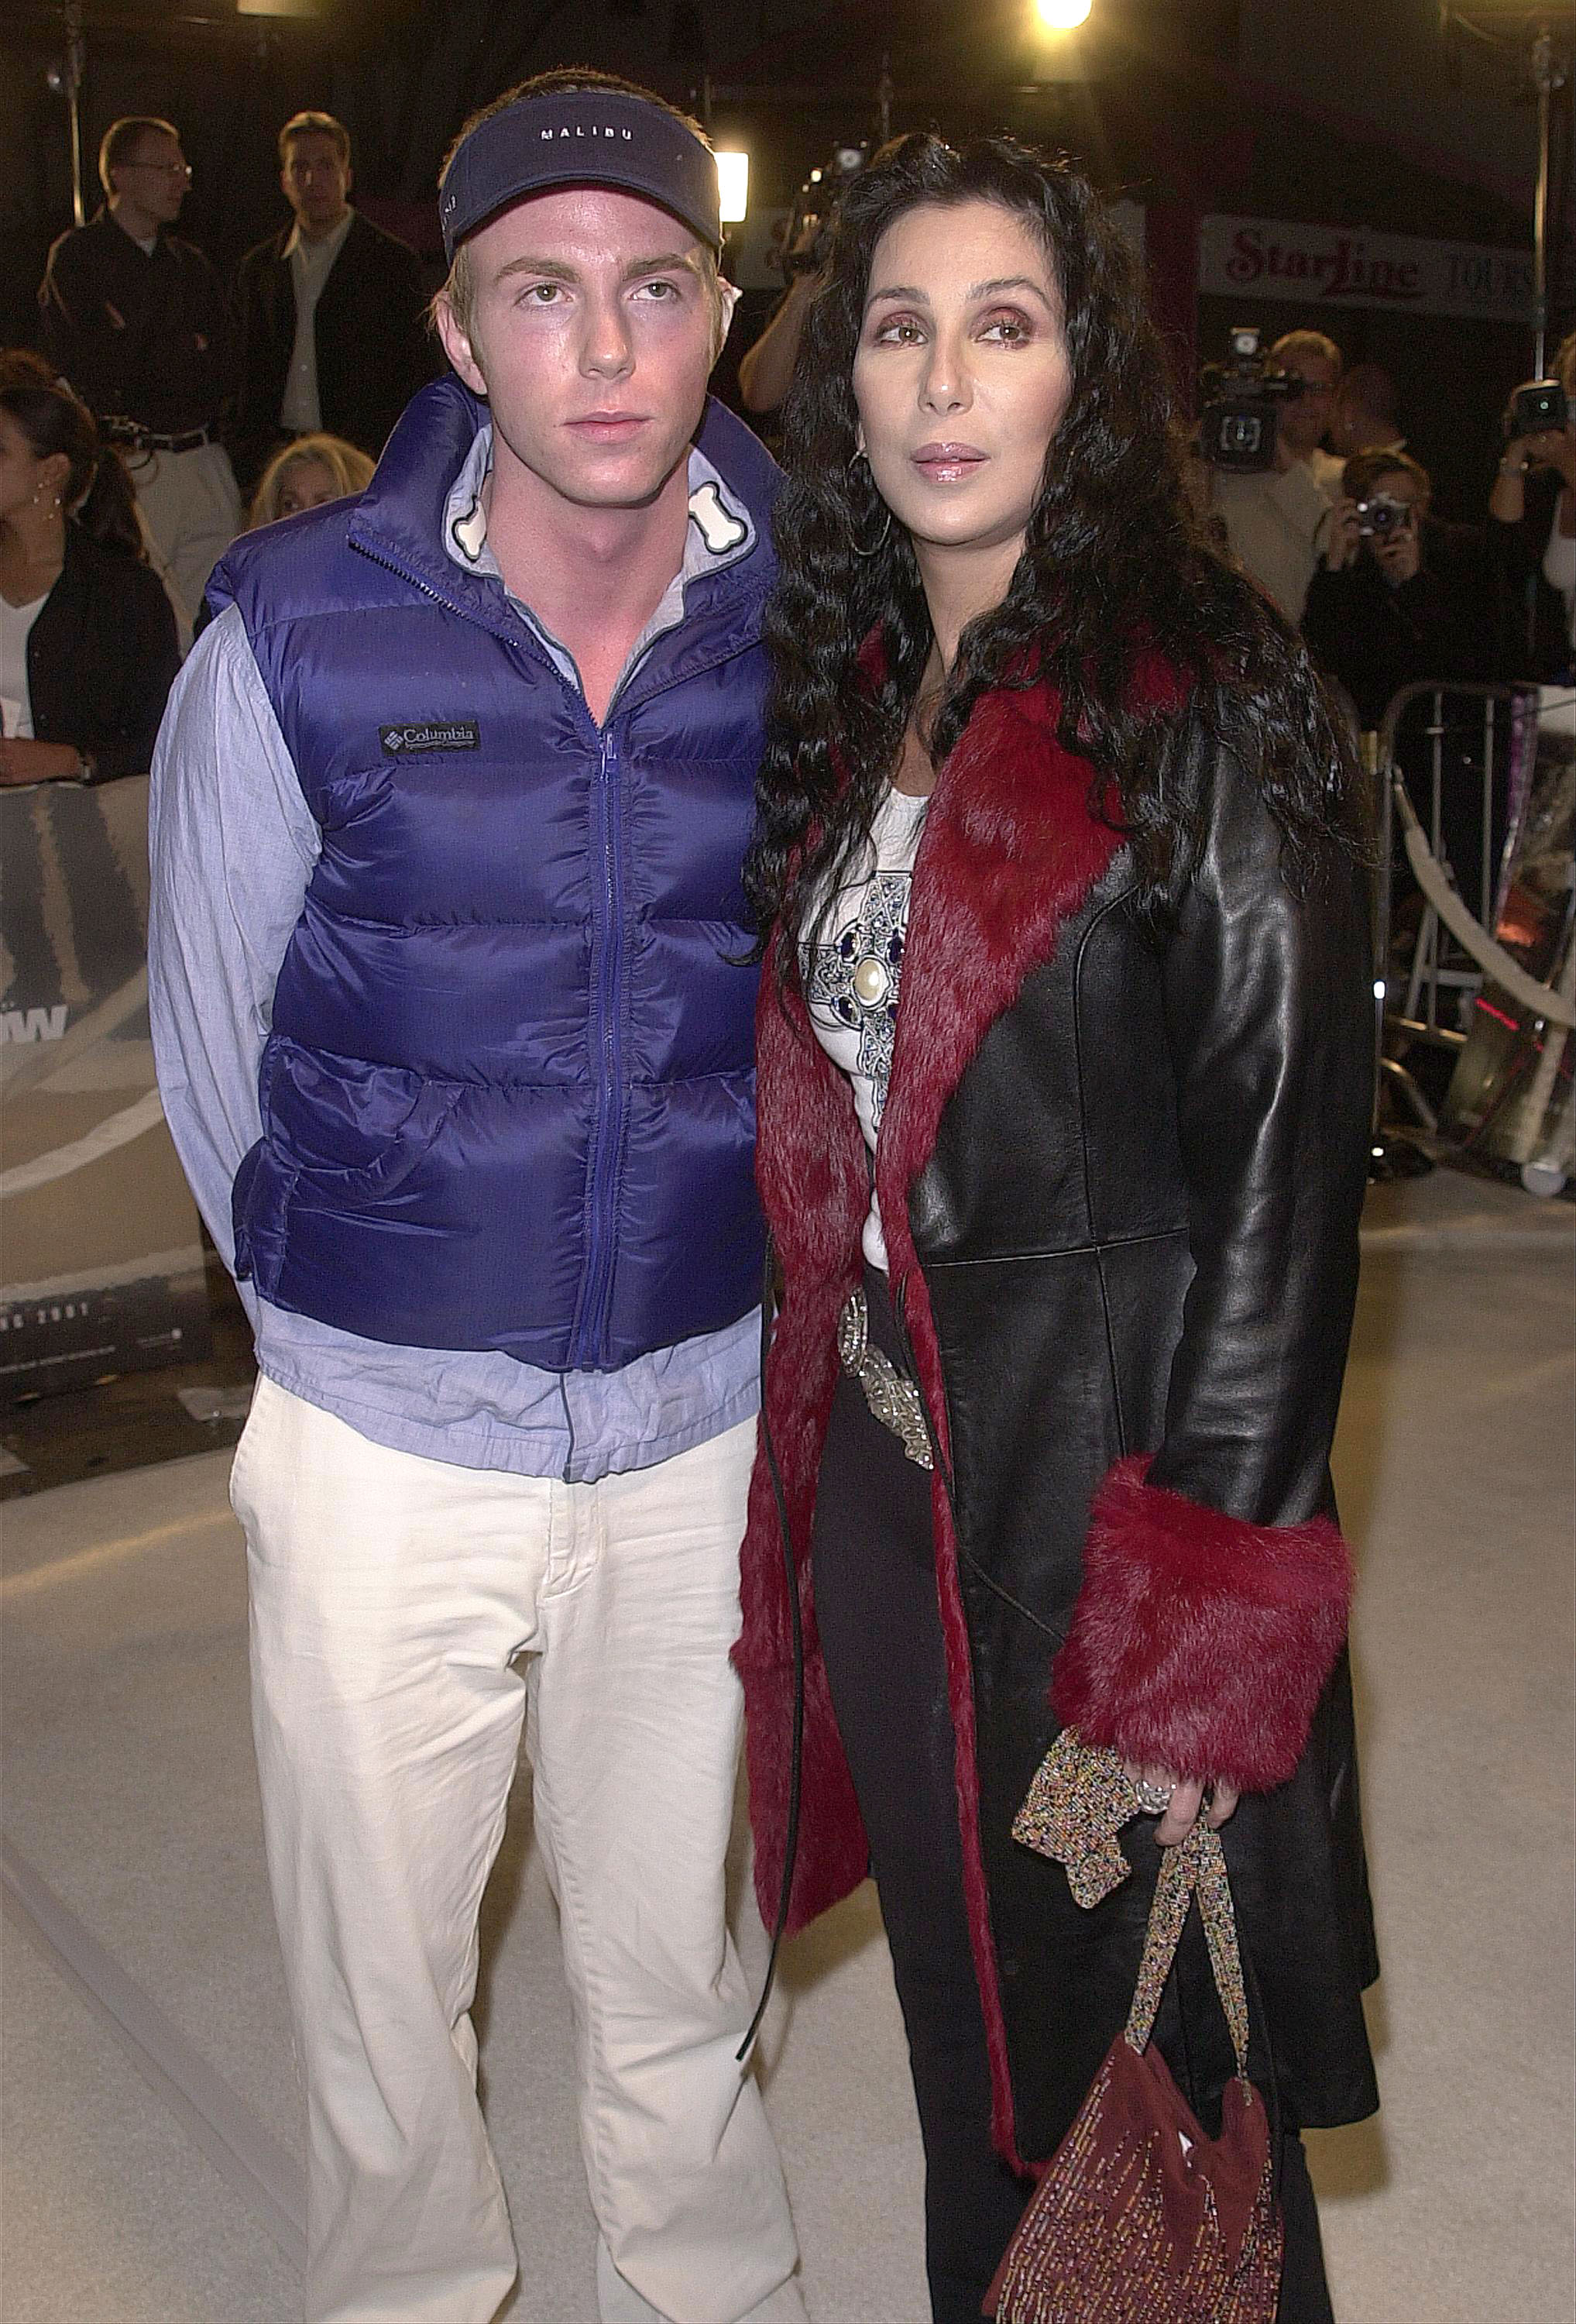 Image Source: Getty Images/Cher and her son Elijah